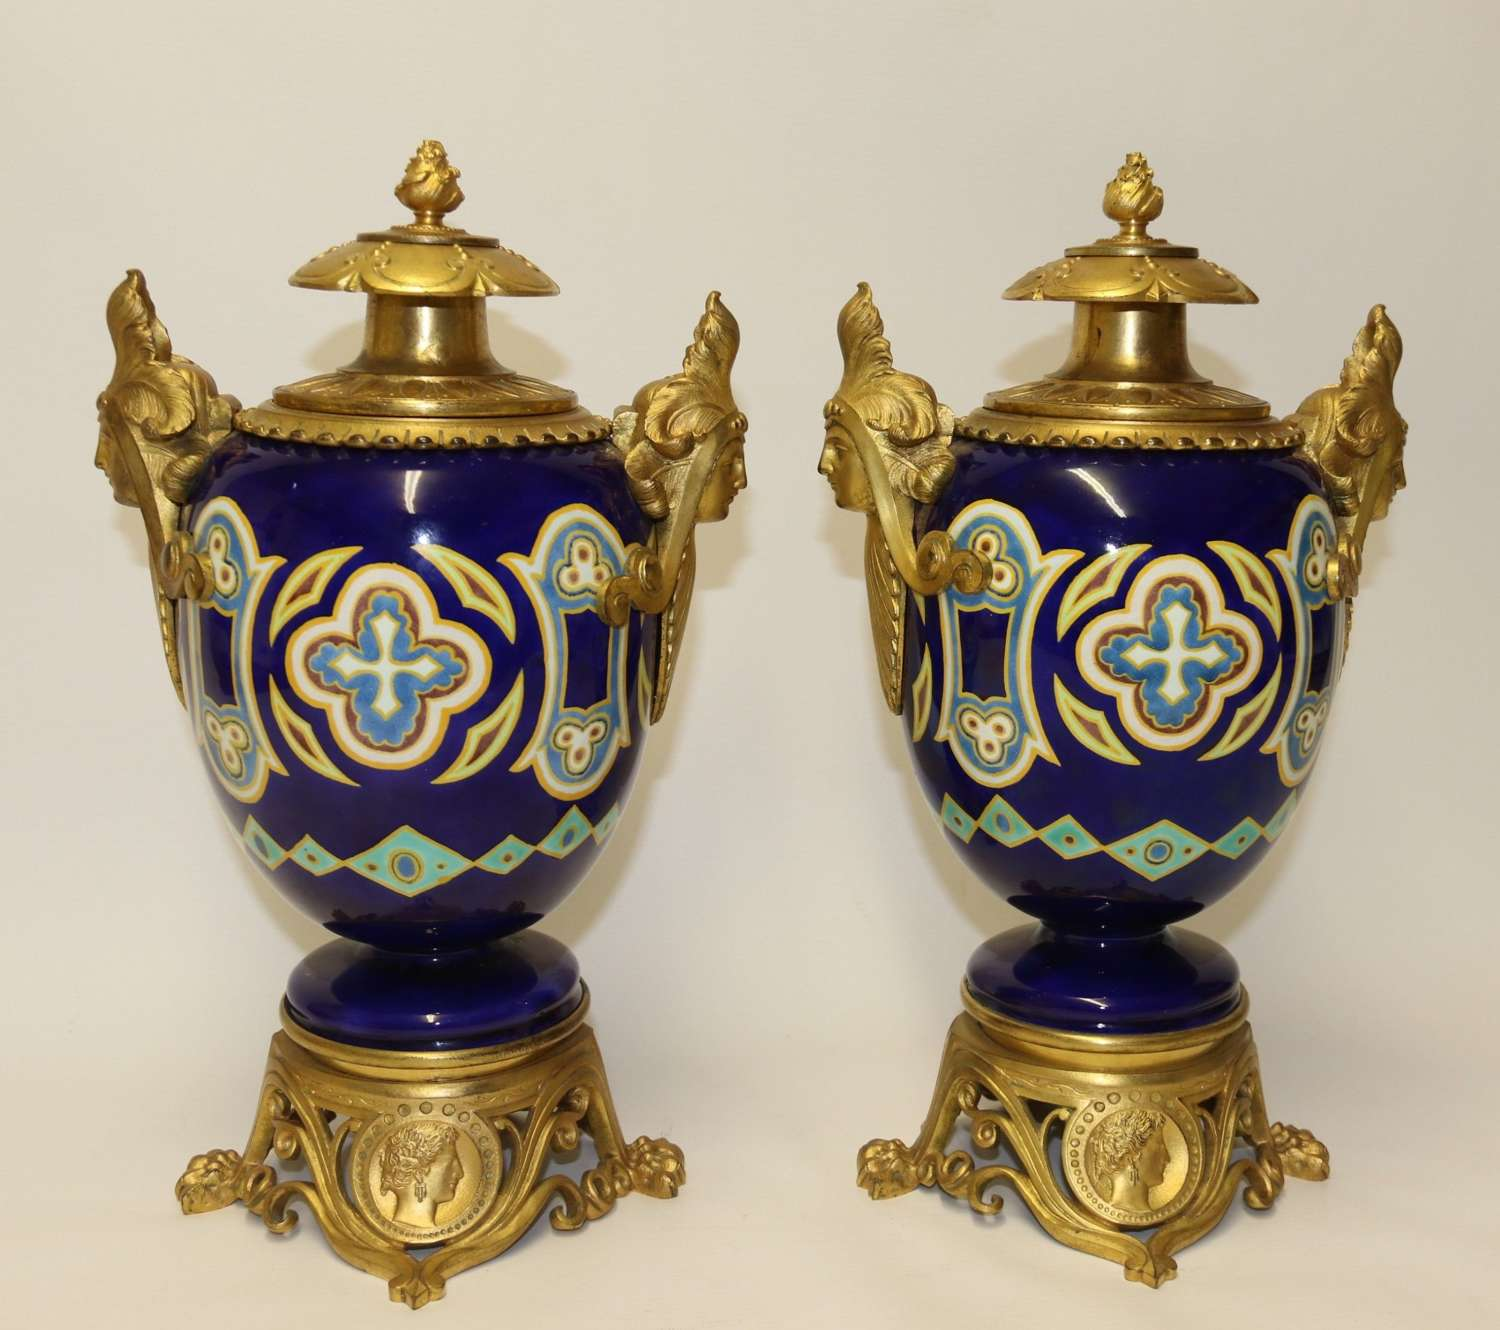 A Superb Pair Of Gilt Bronze And Pottery Aztec Design Vases/urns